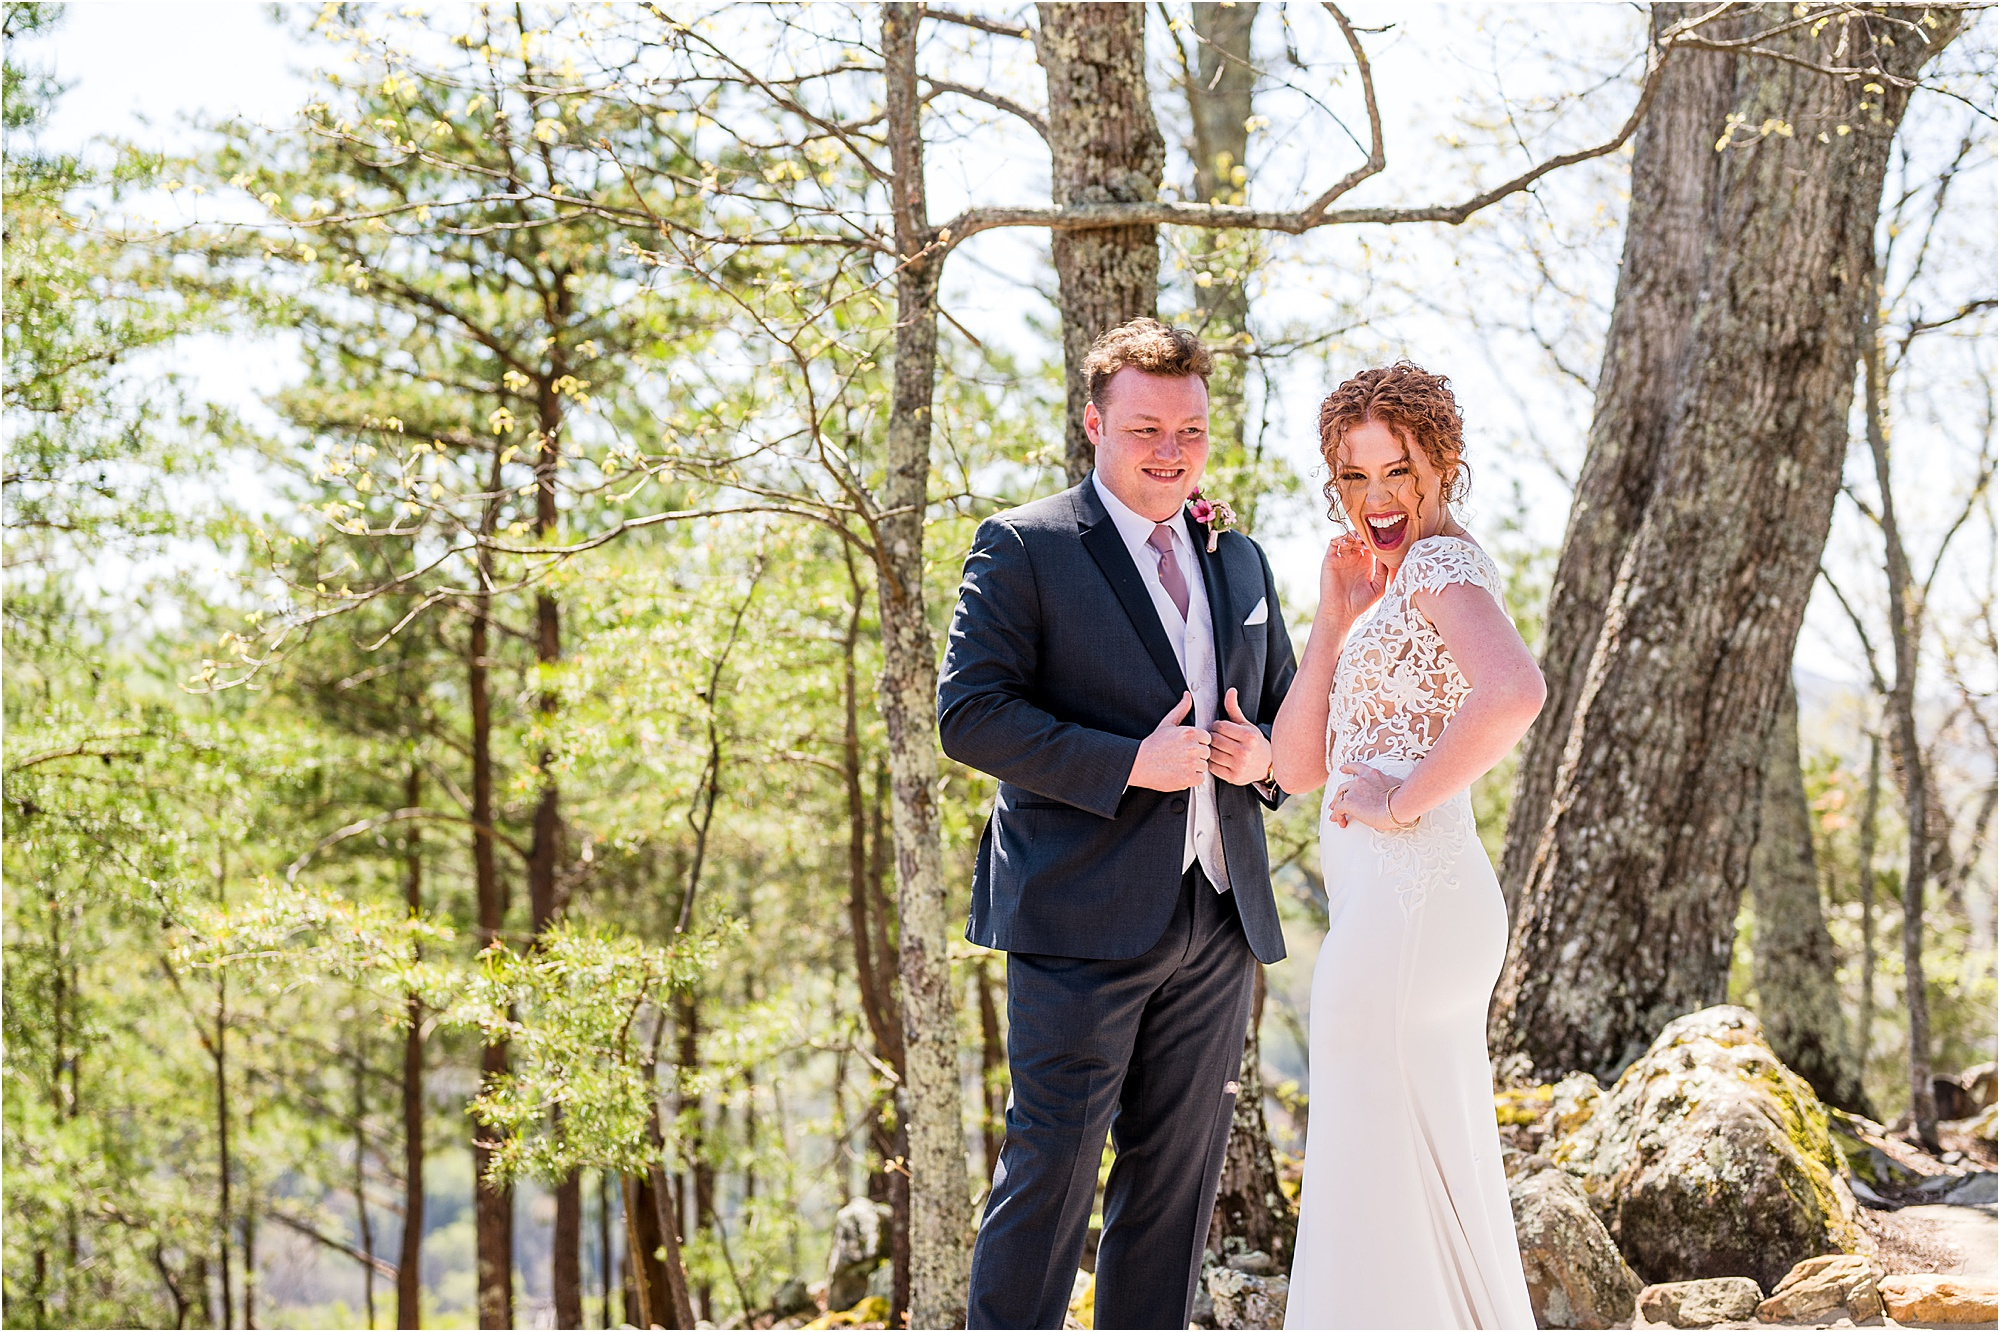 fun first look with bride and groom